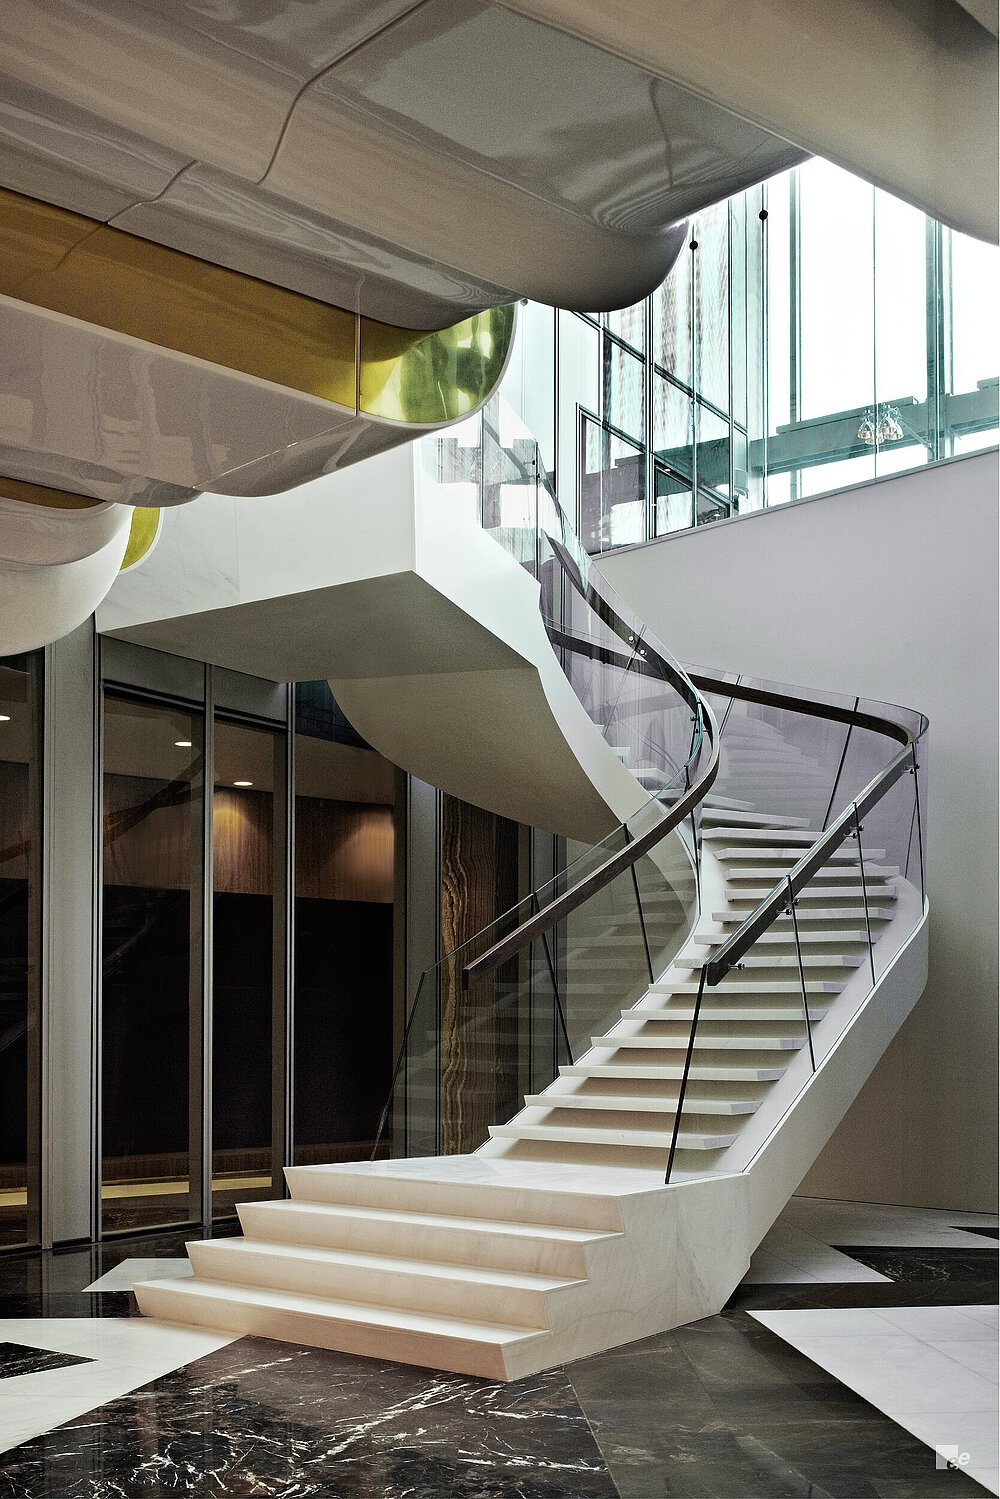 glass is also used in the staircases rounded design contrasting with straight shapes and sharp angles throughout the rest of the buildings interior - Blackstone Home Design